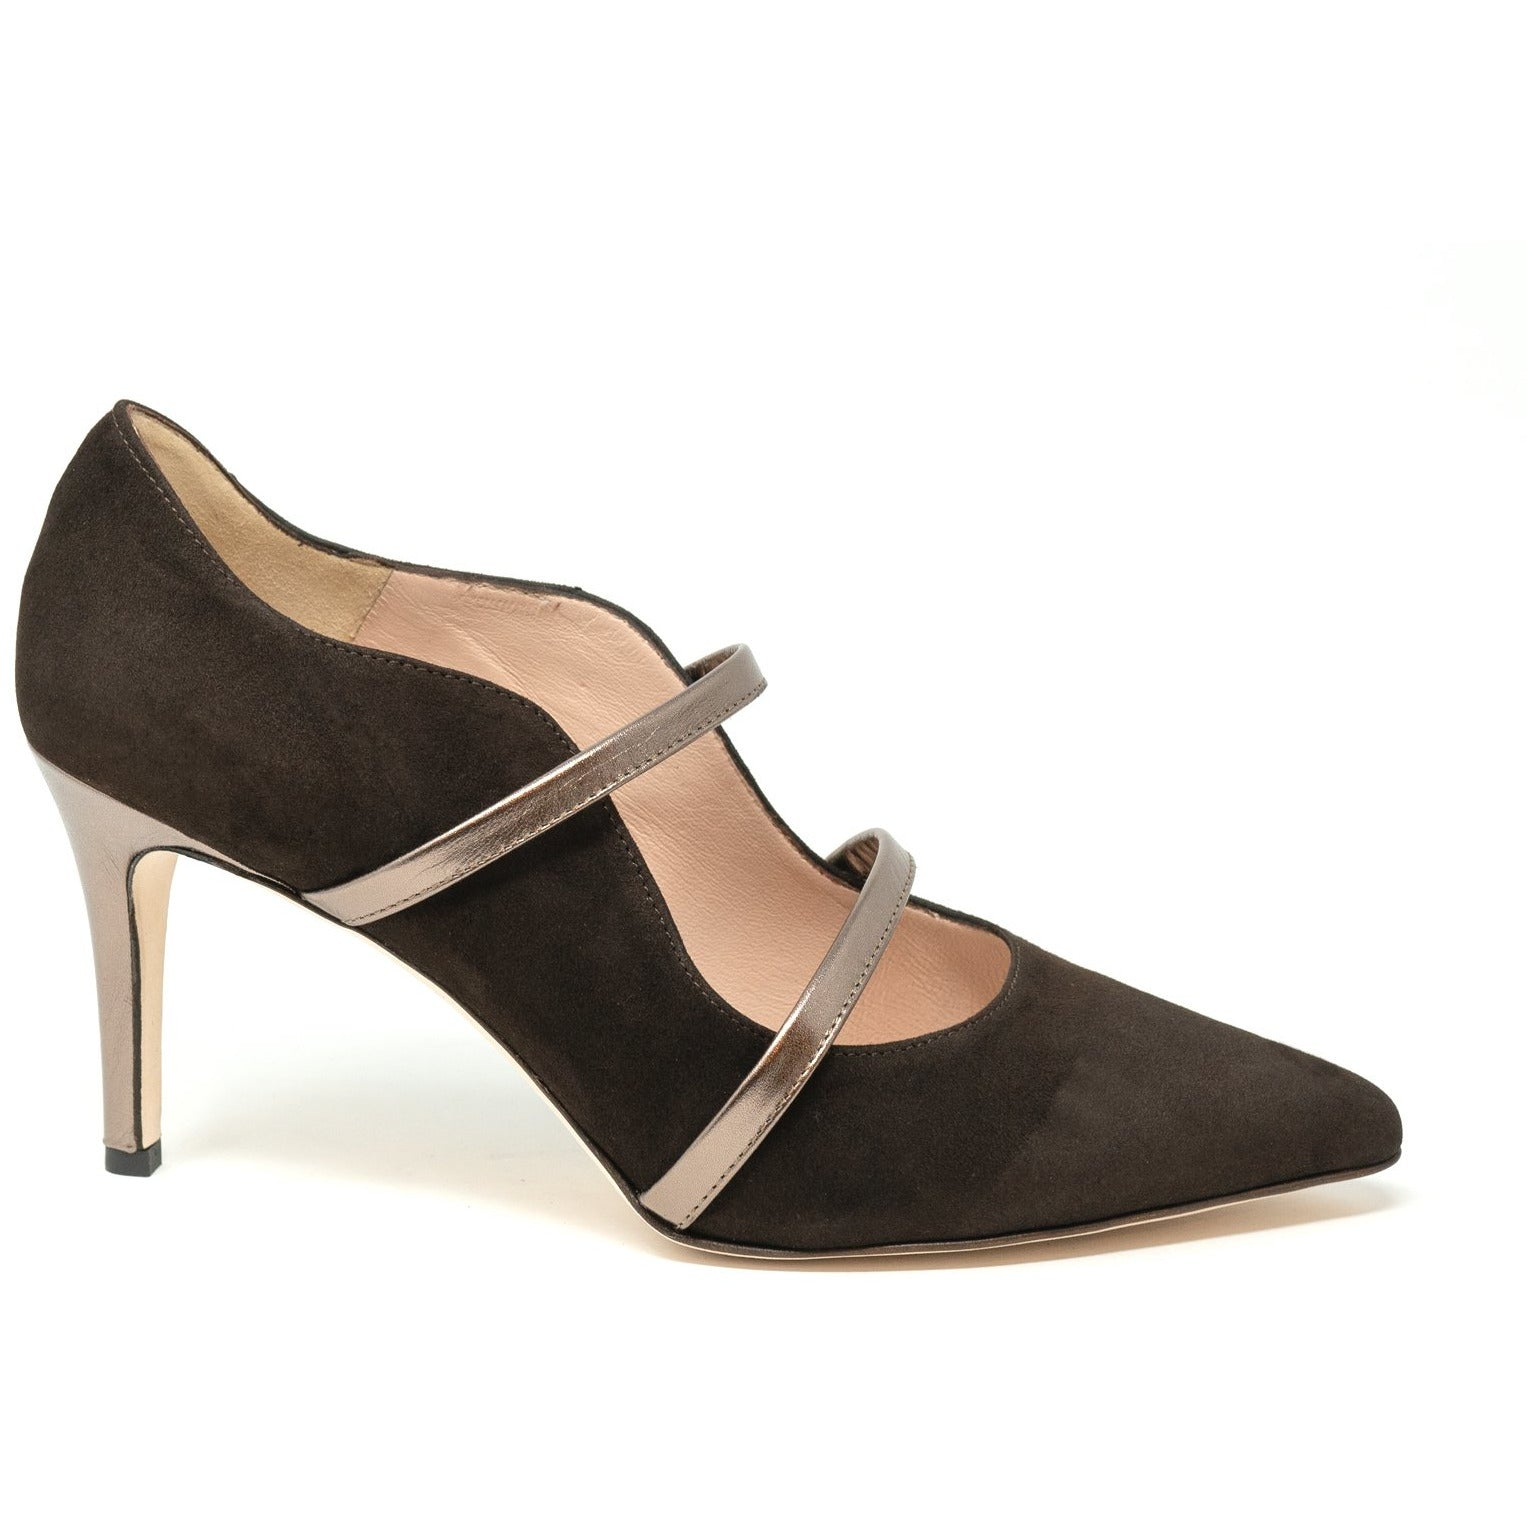 MIL5001 H80 Women Leather Pumps - Jennifer Tattanelli